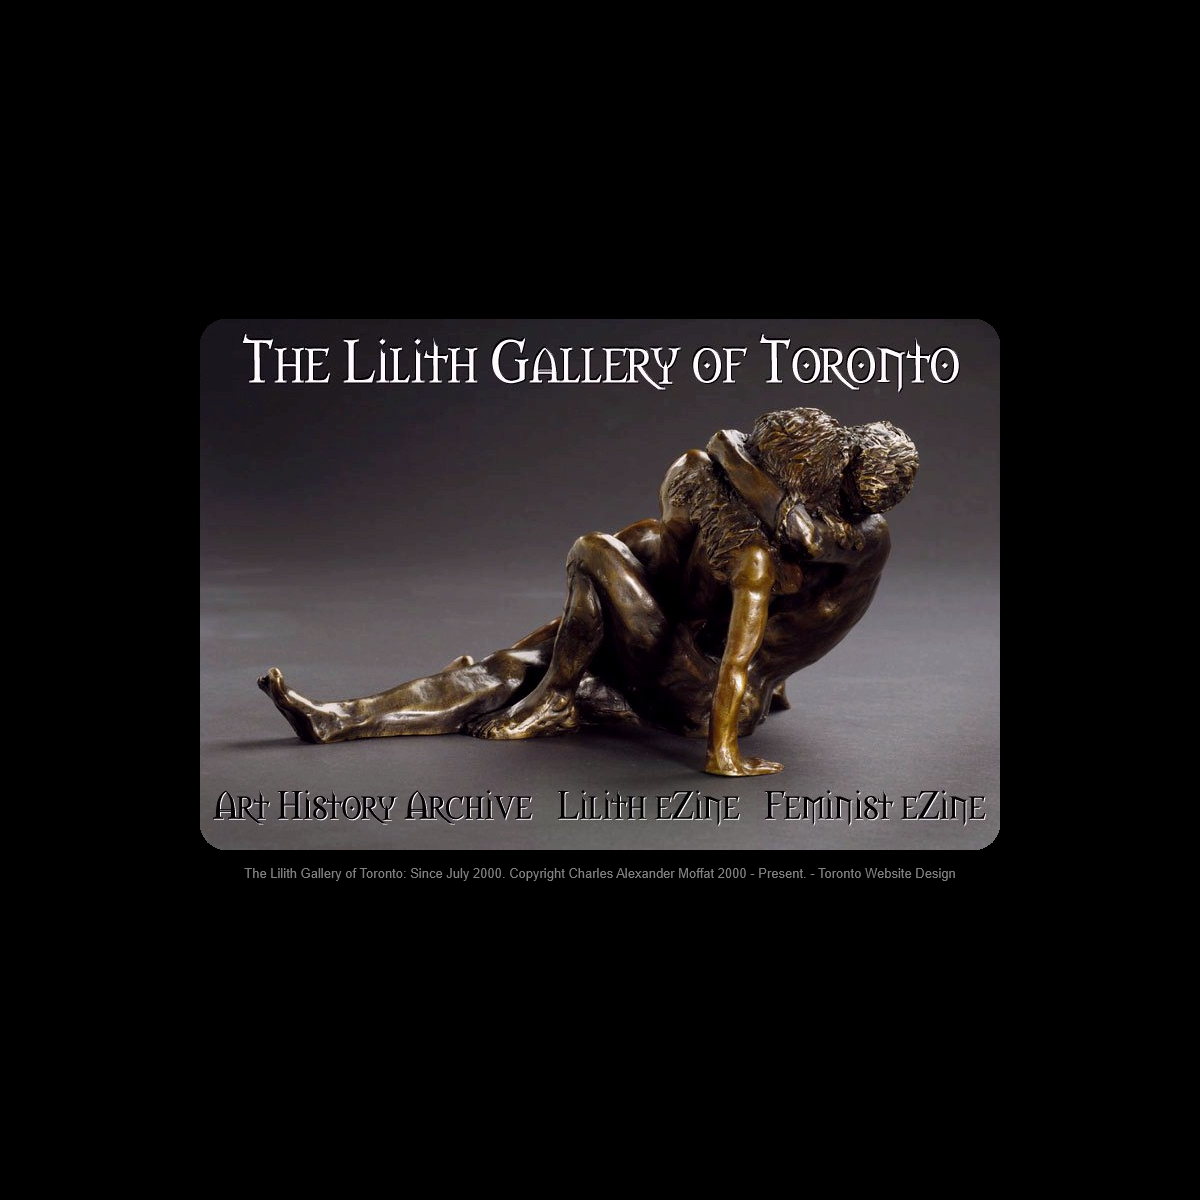 The Lilith Gallery of Toronto